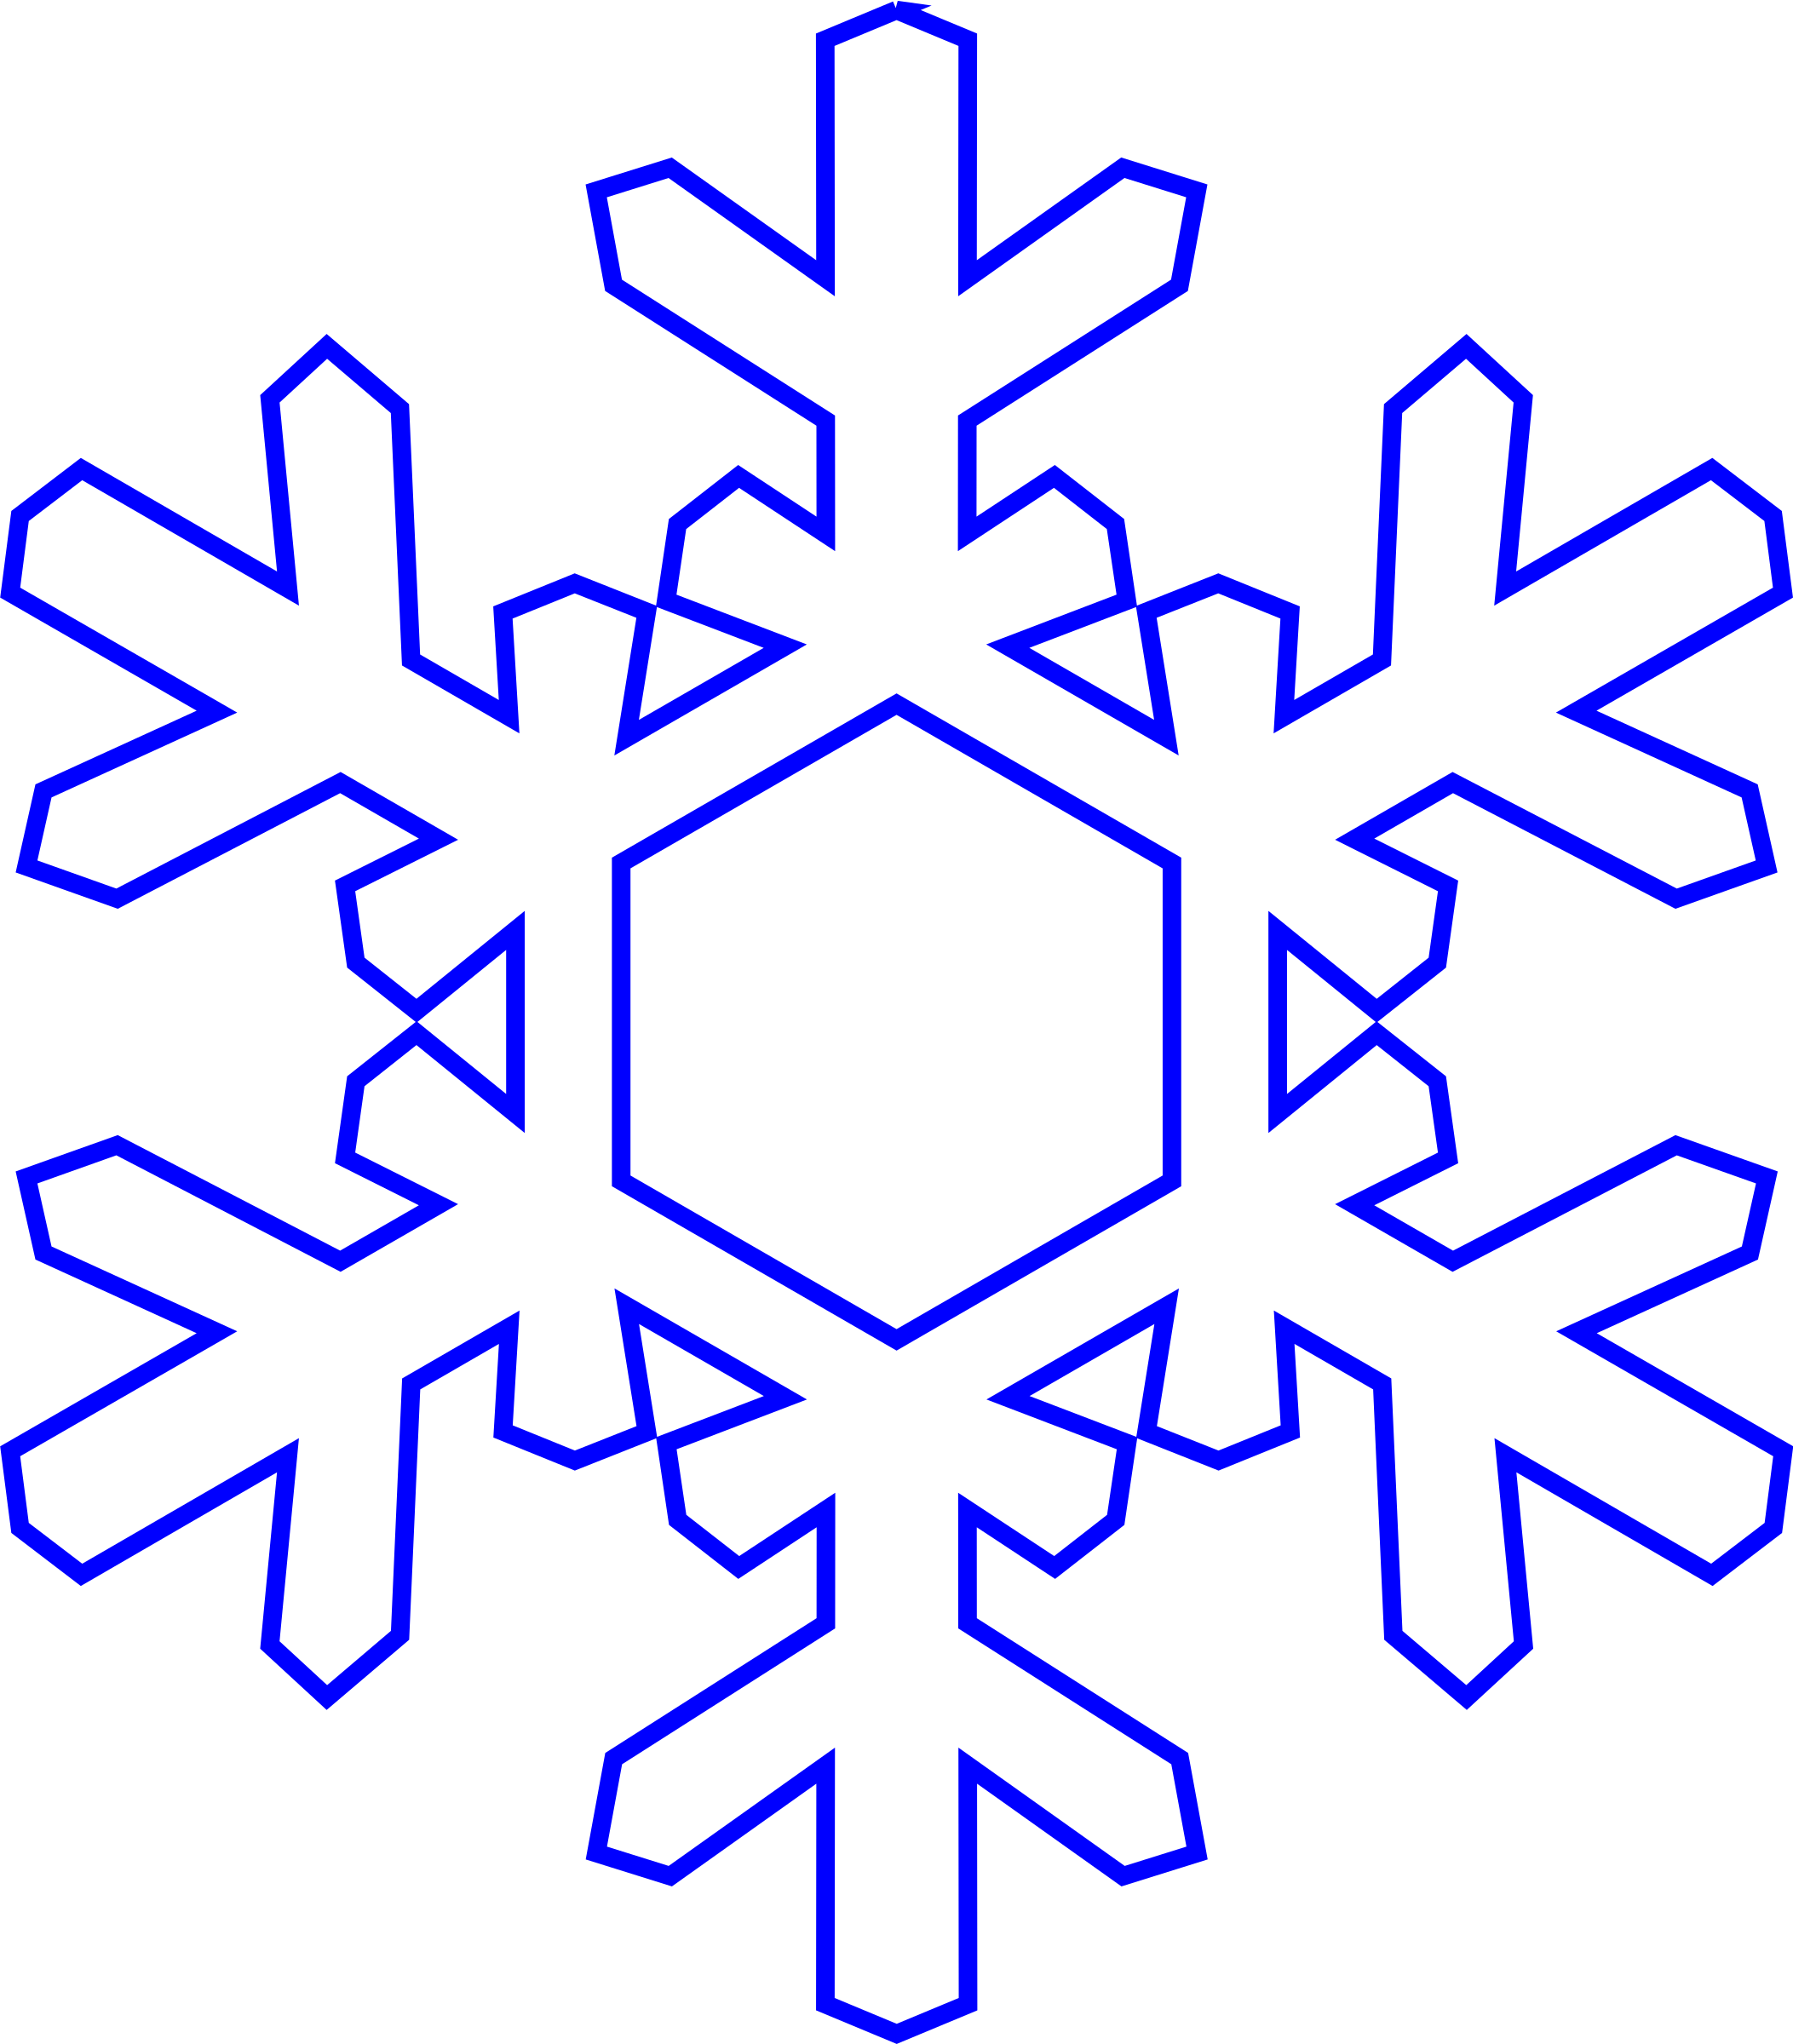 Blue snowflake outline clipart graphic black and white stock Real Snowflake Cliparts | jokingart.com Snowflake Clipart graphic black and white stock